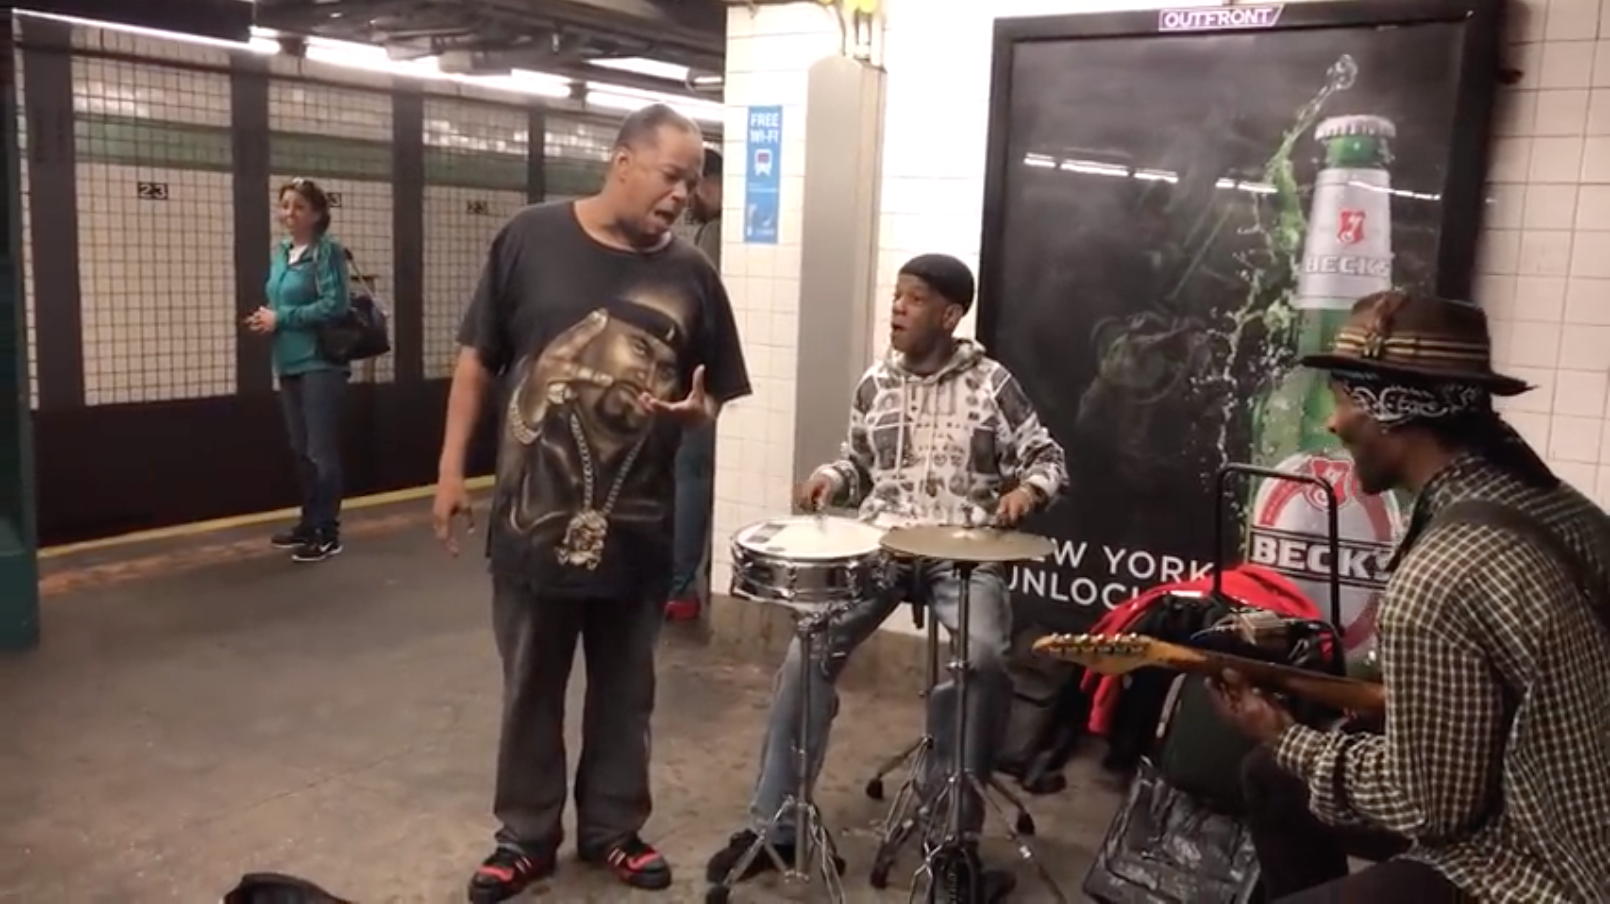 Subway Performer Mike Yung Sings to Baby – If You Don't Know Me By Now